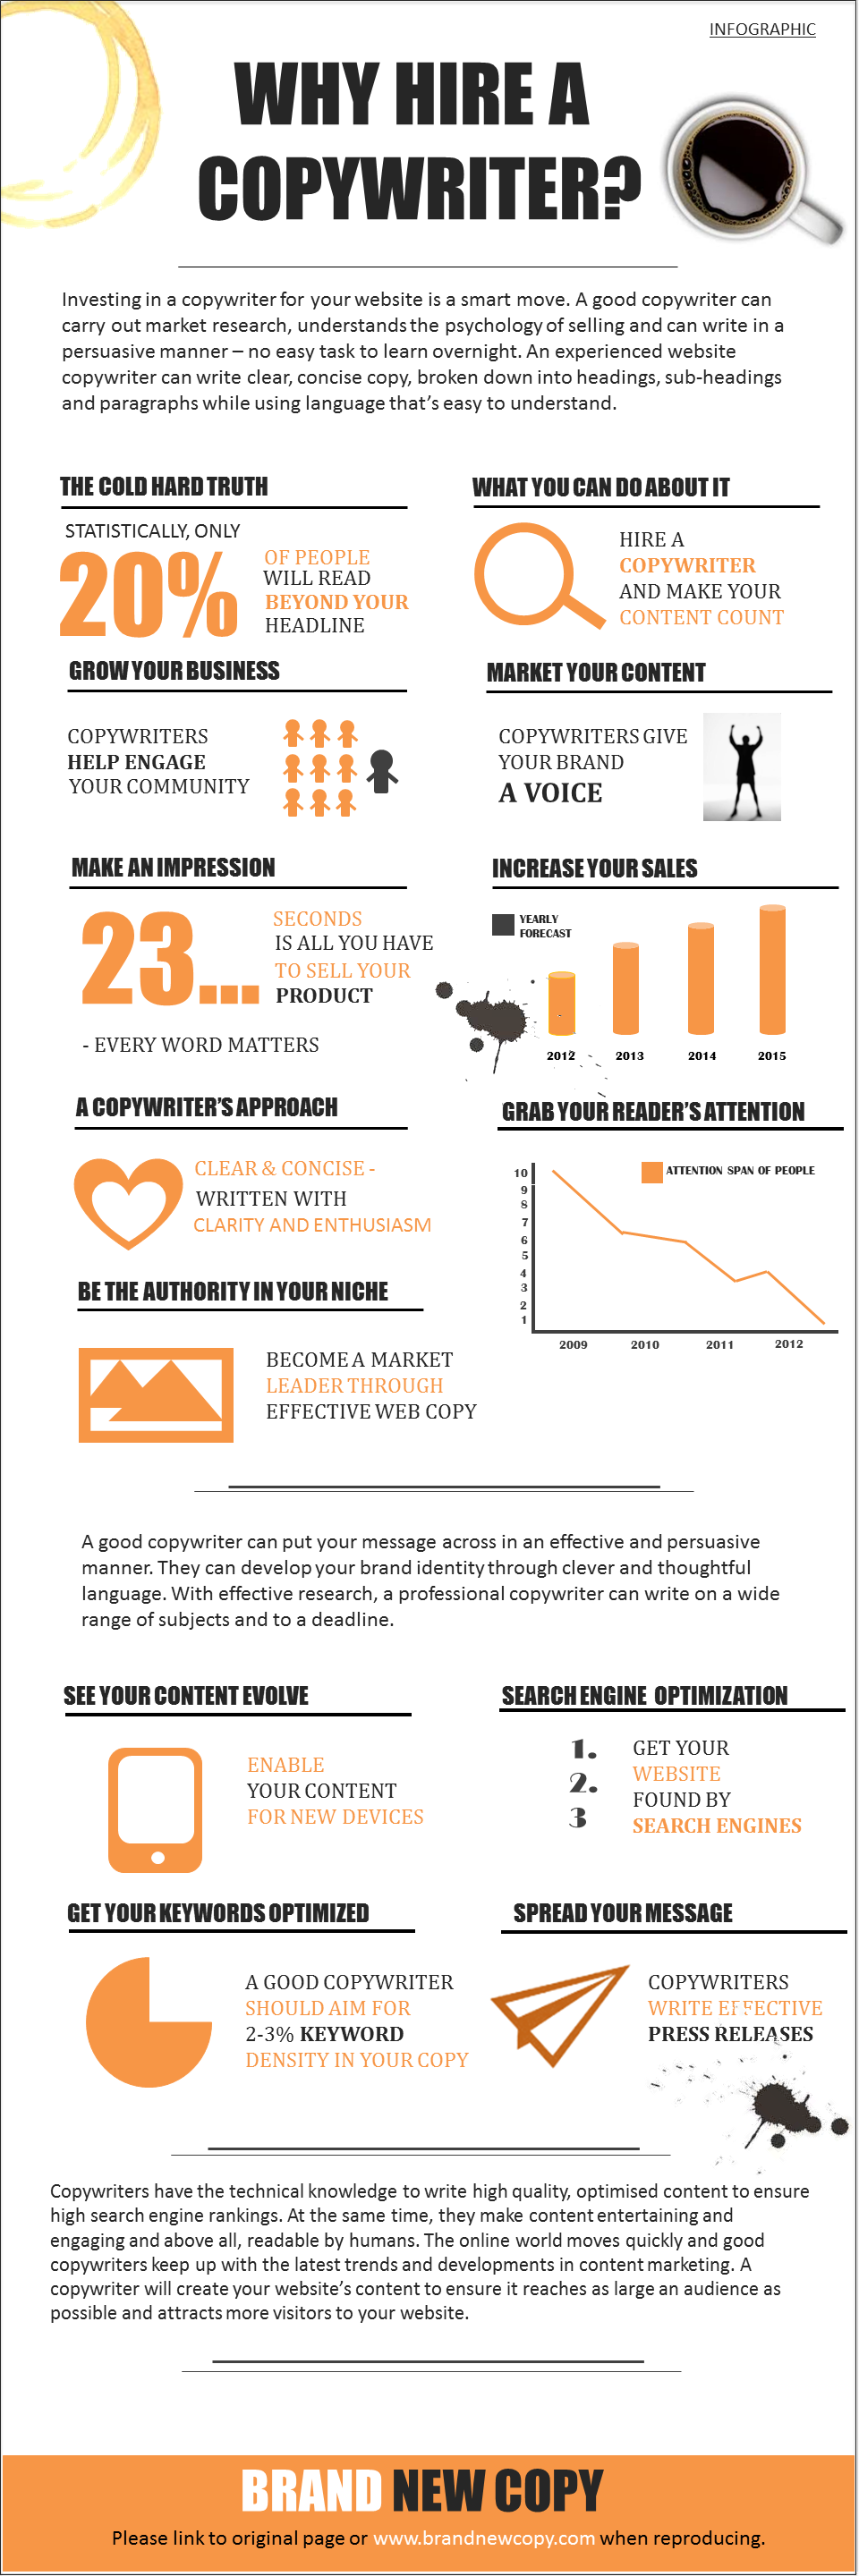 Why Hire a Copywriter [Infographic]